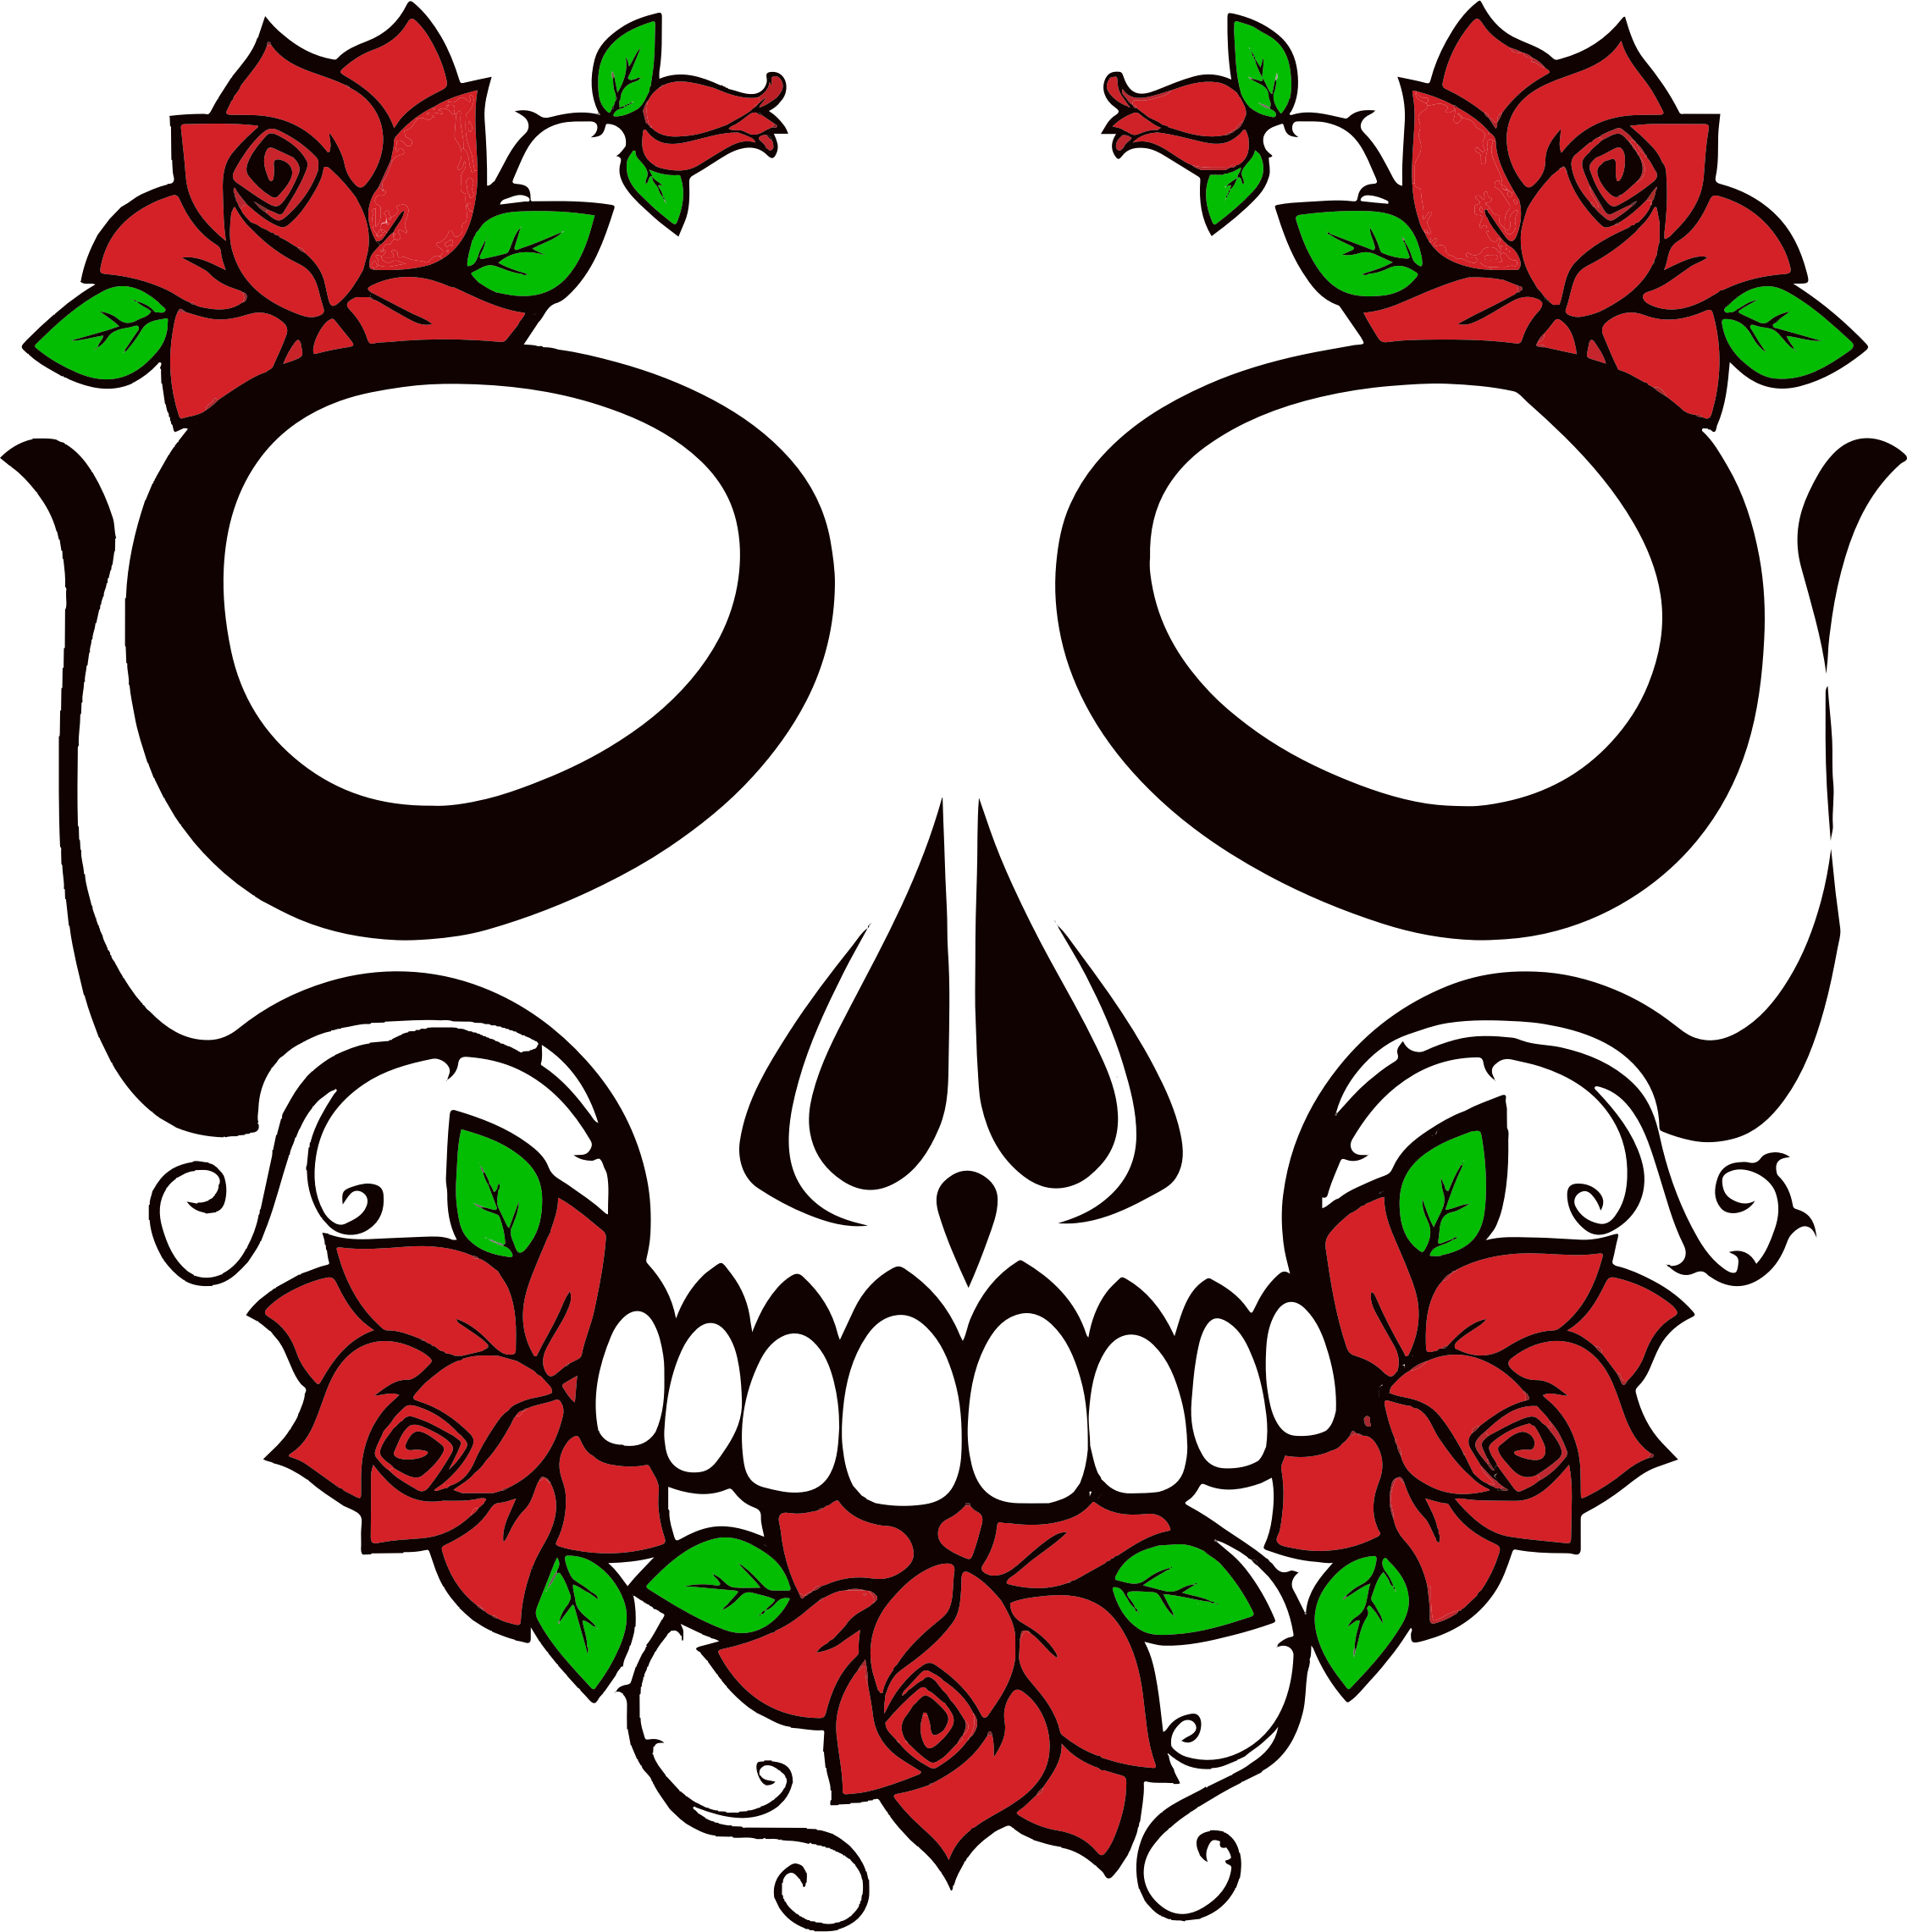 Skull And Roses by GDJ